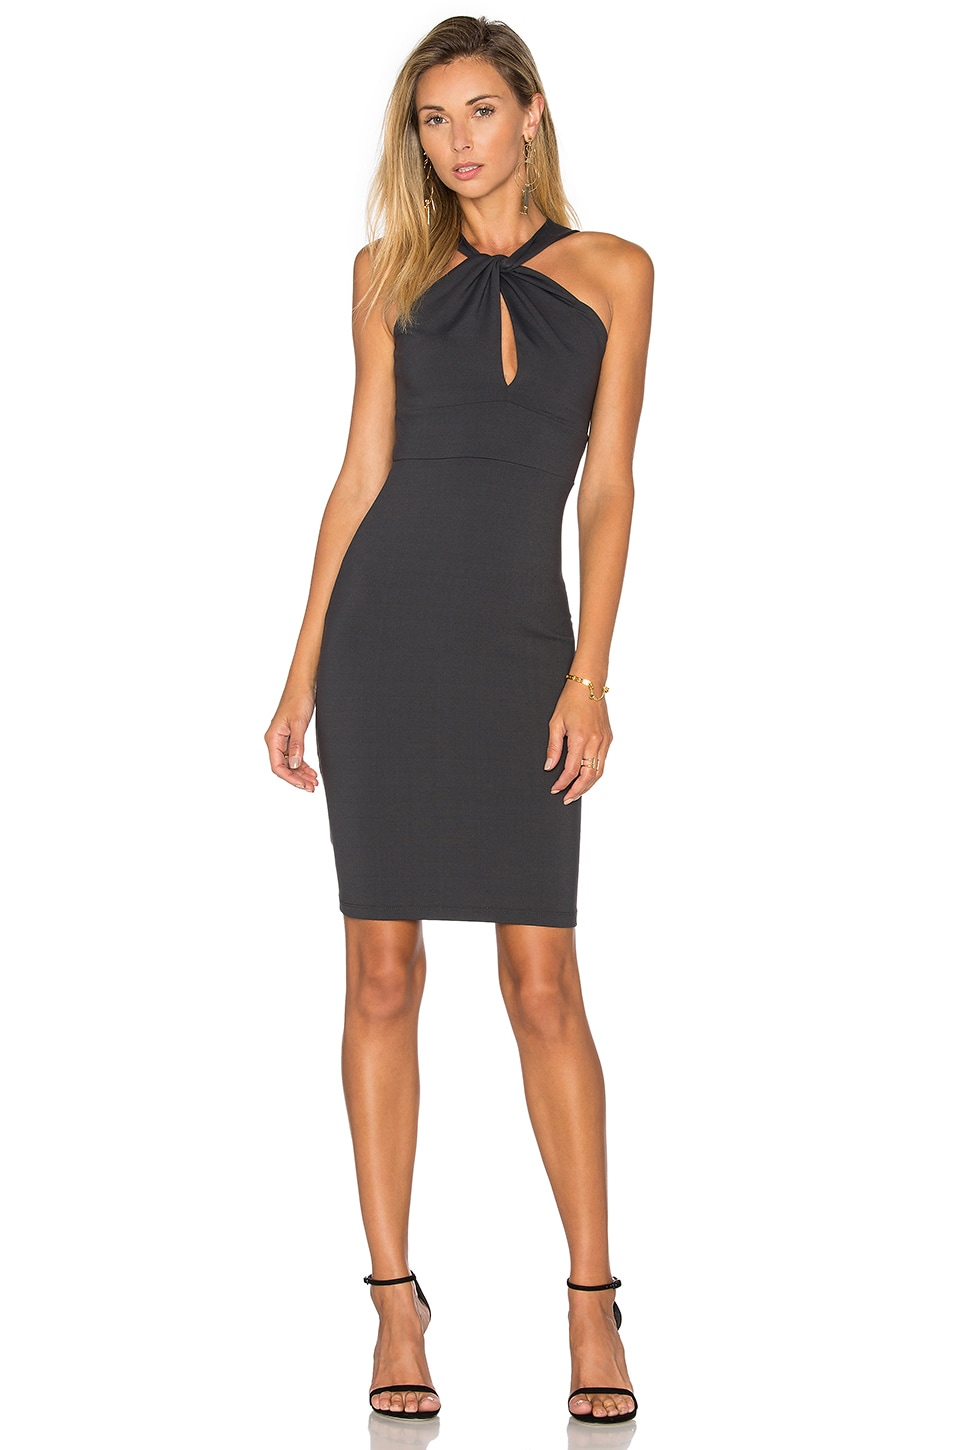 Susana Monaco Aura Dress in Onyx